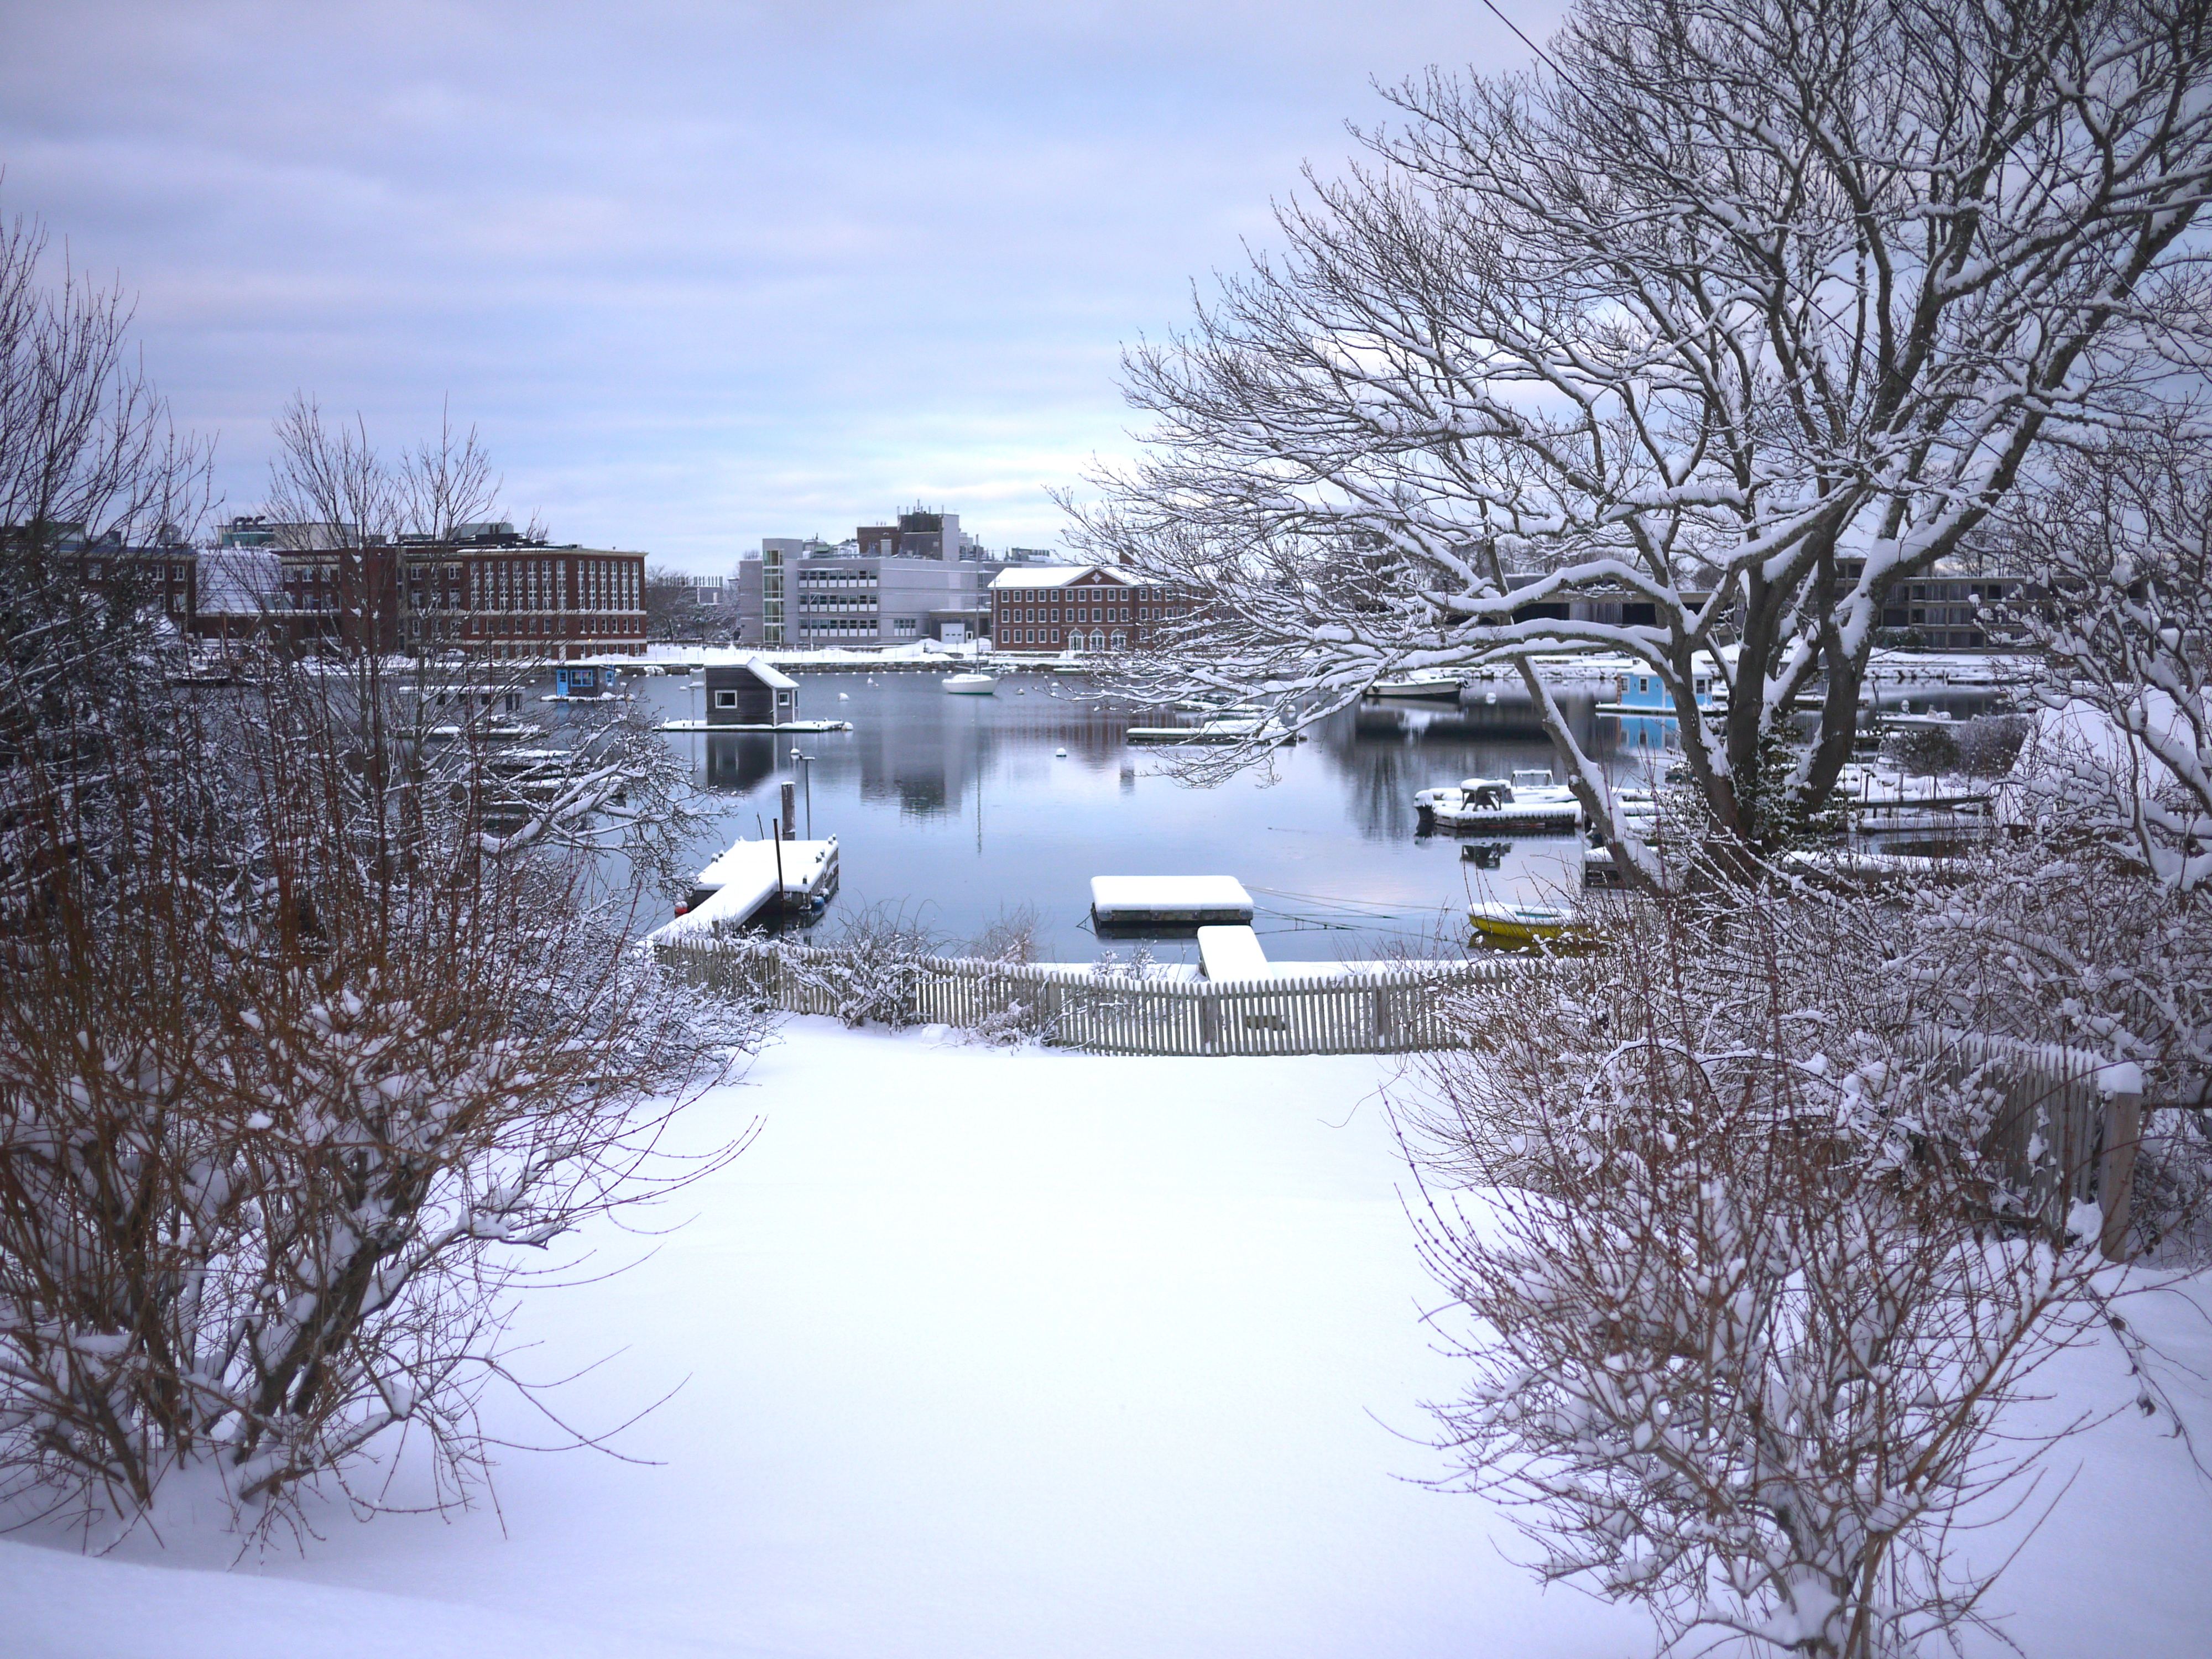 View of the Eel Pond, winter 2012